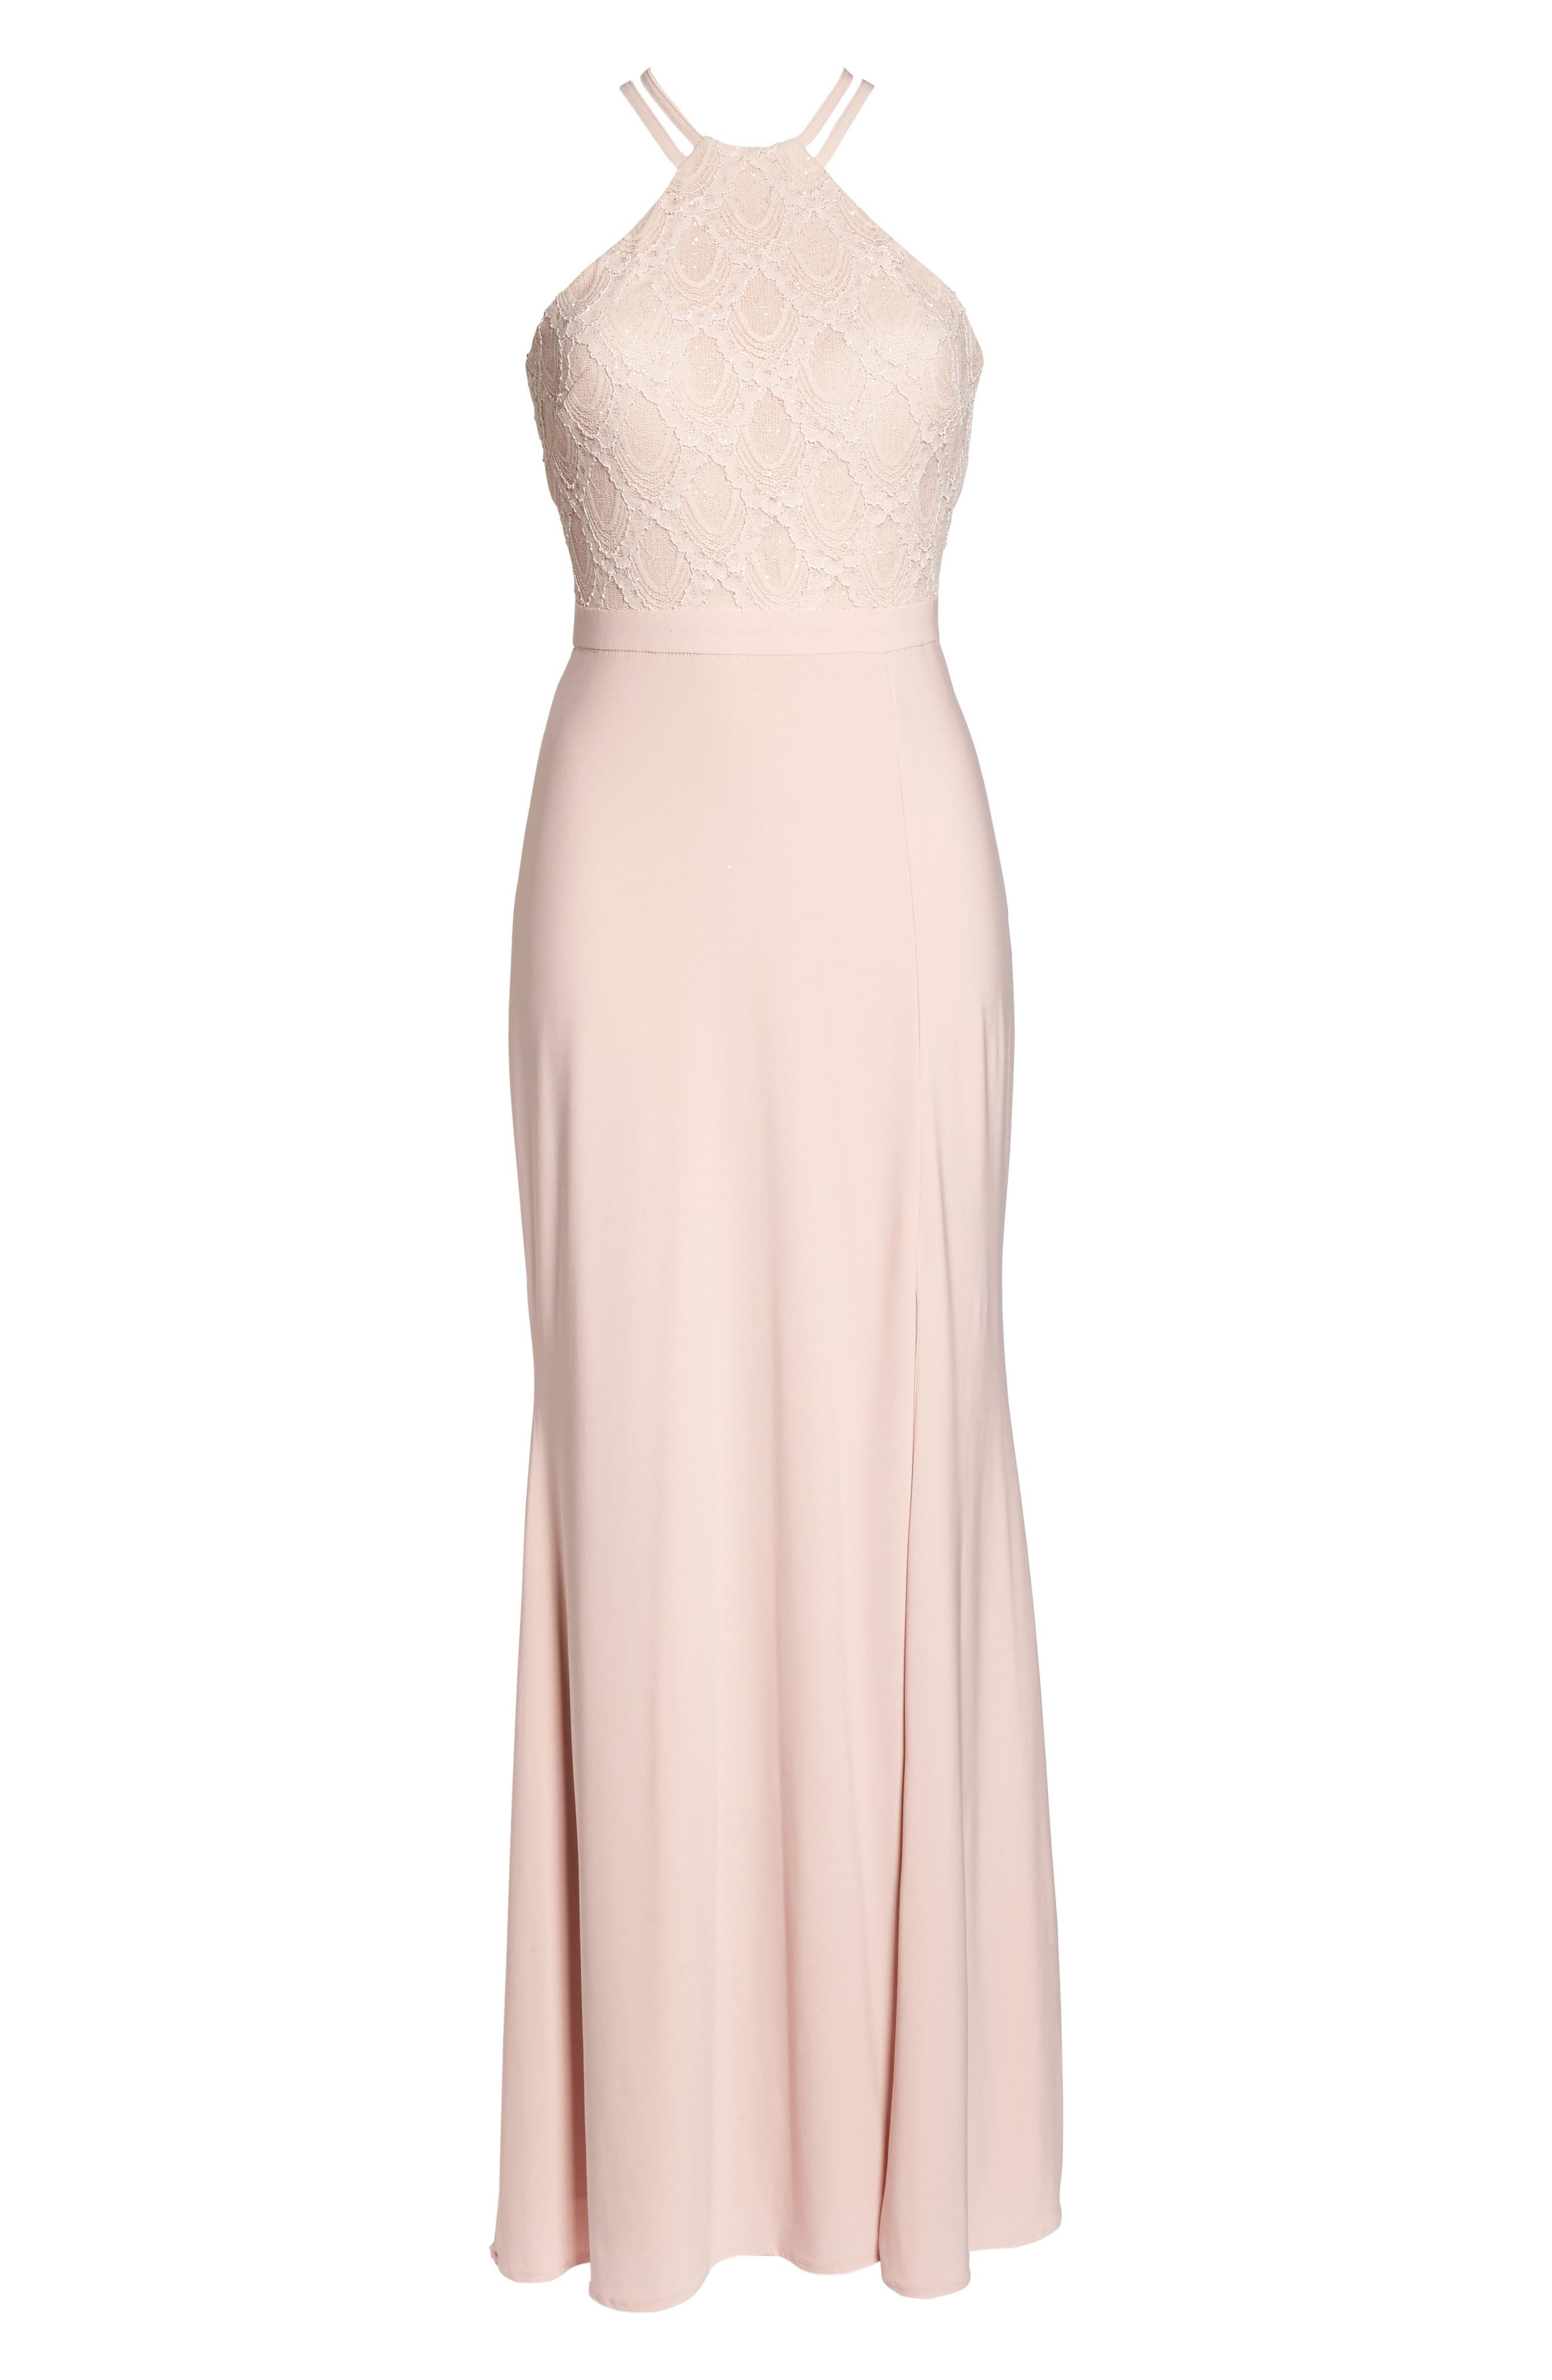 Lace Cutaway Bodice Gown,                             Alternate thumbnail 6, color,                             BLUSH / NUDE